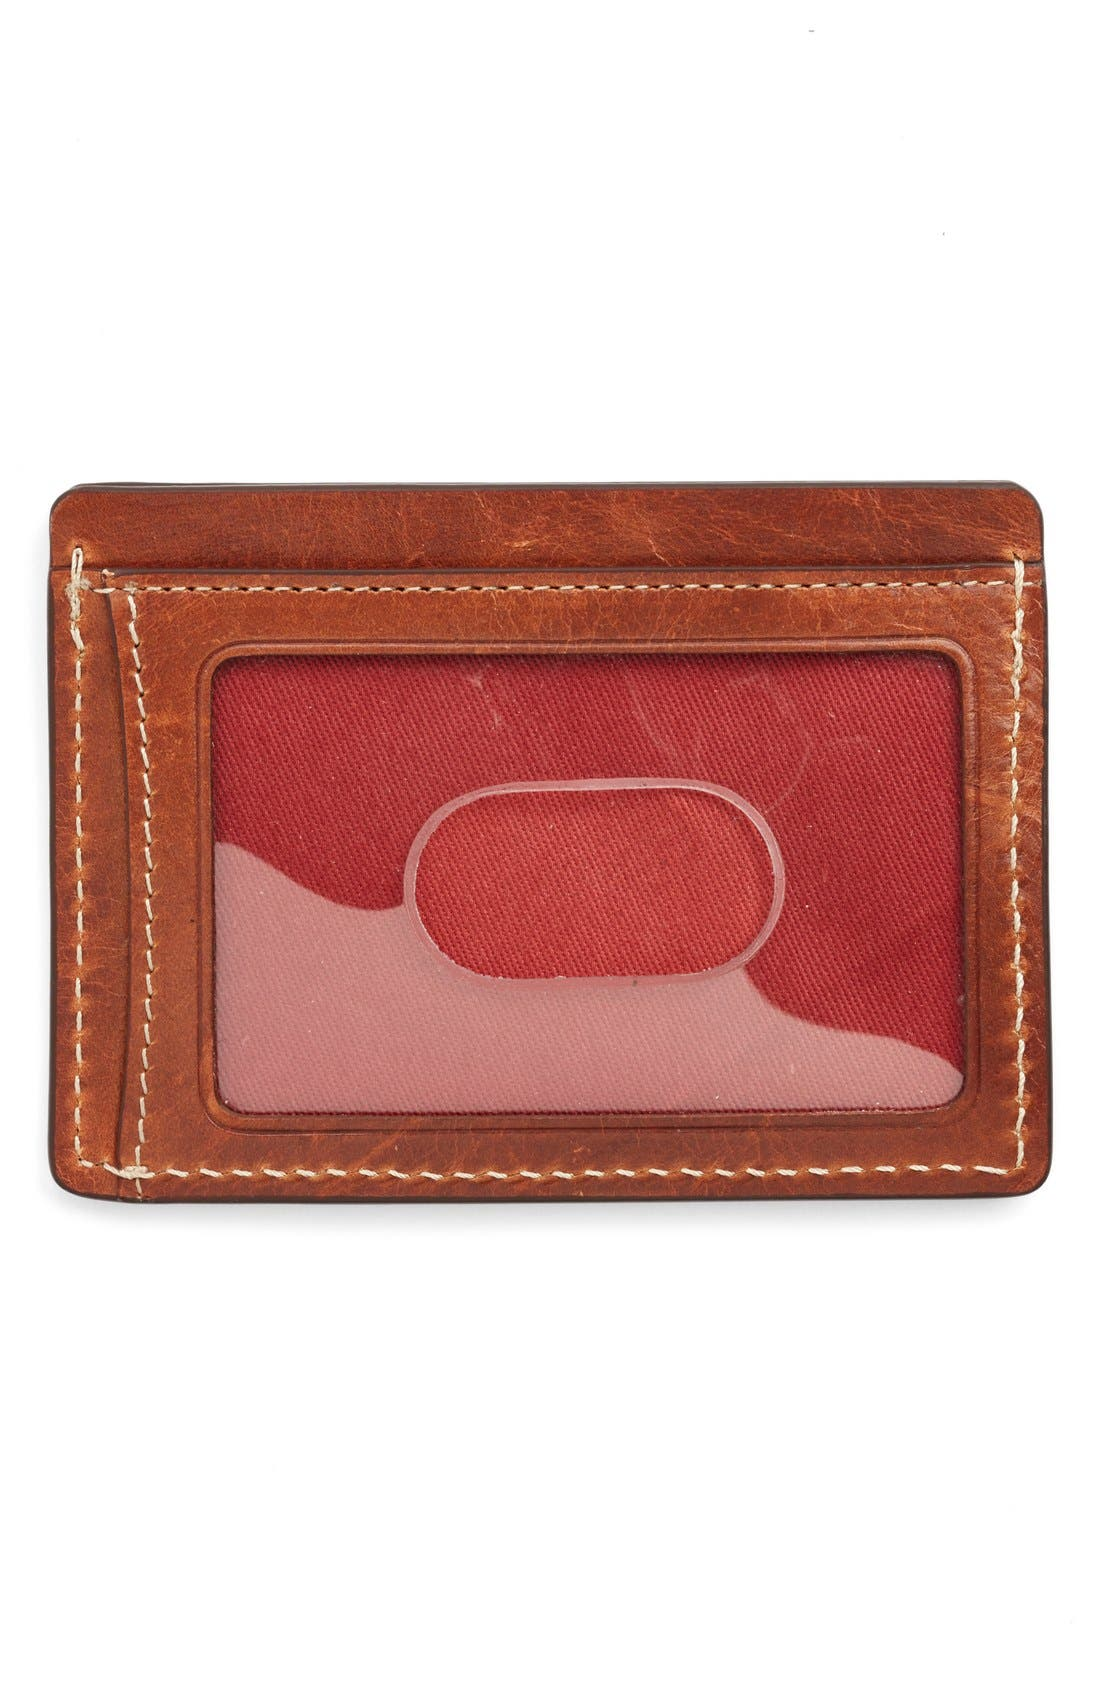 'Jackson' Bison Leather Card Case,                             Alternate thumbnail 2, color,                             700